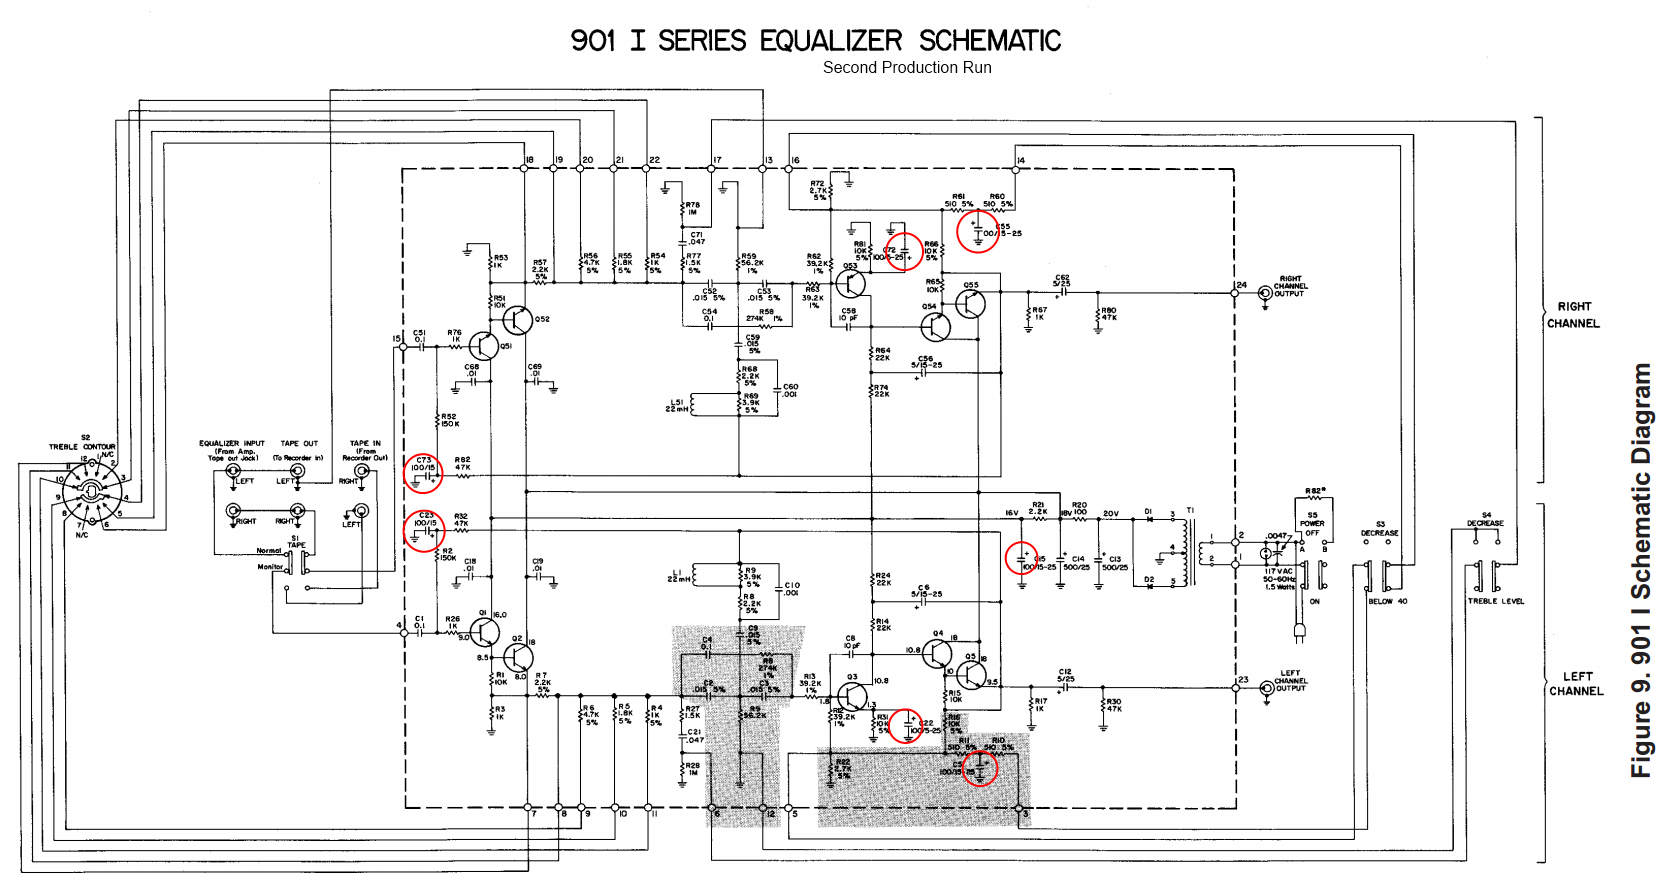 901 I Second 5 1 bose speakers system wiring diagram bose surround sound kk2 1 5 wiring diagram at honlapkeszites.co